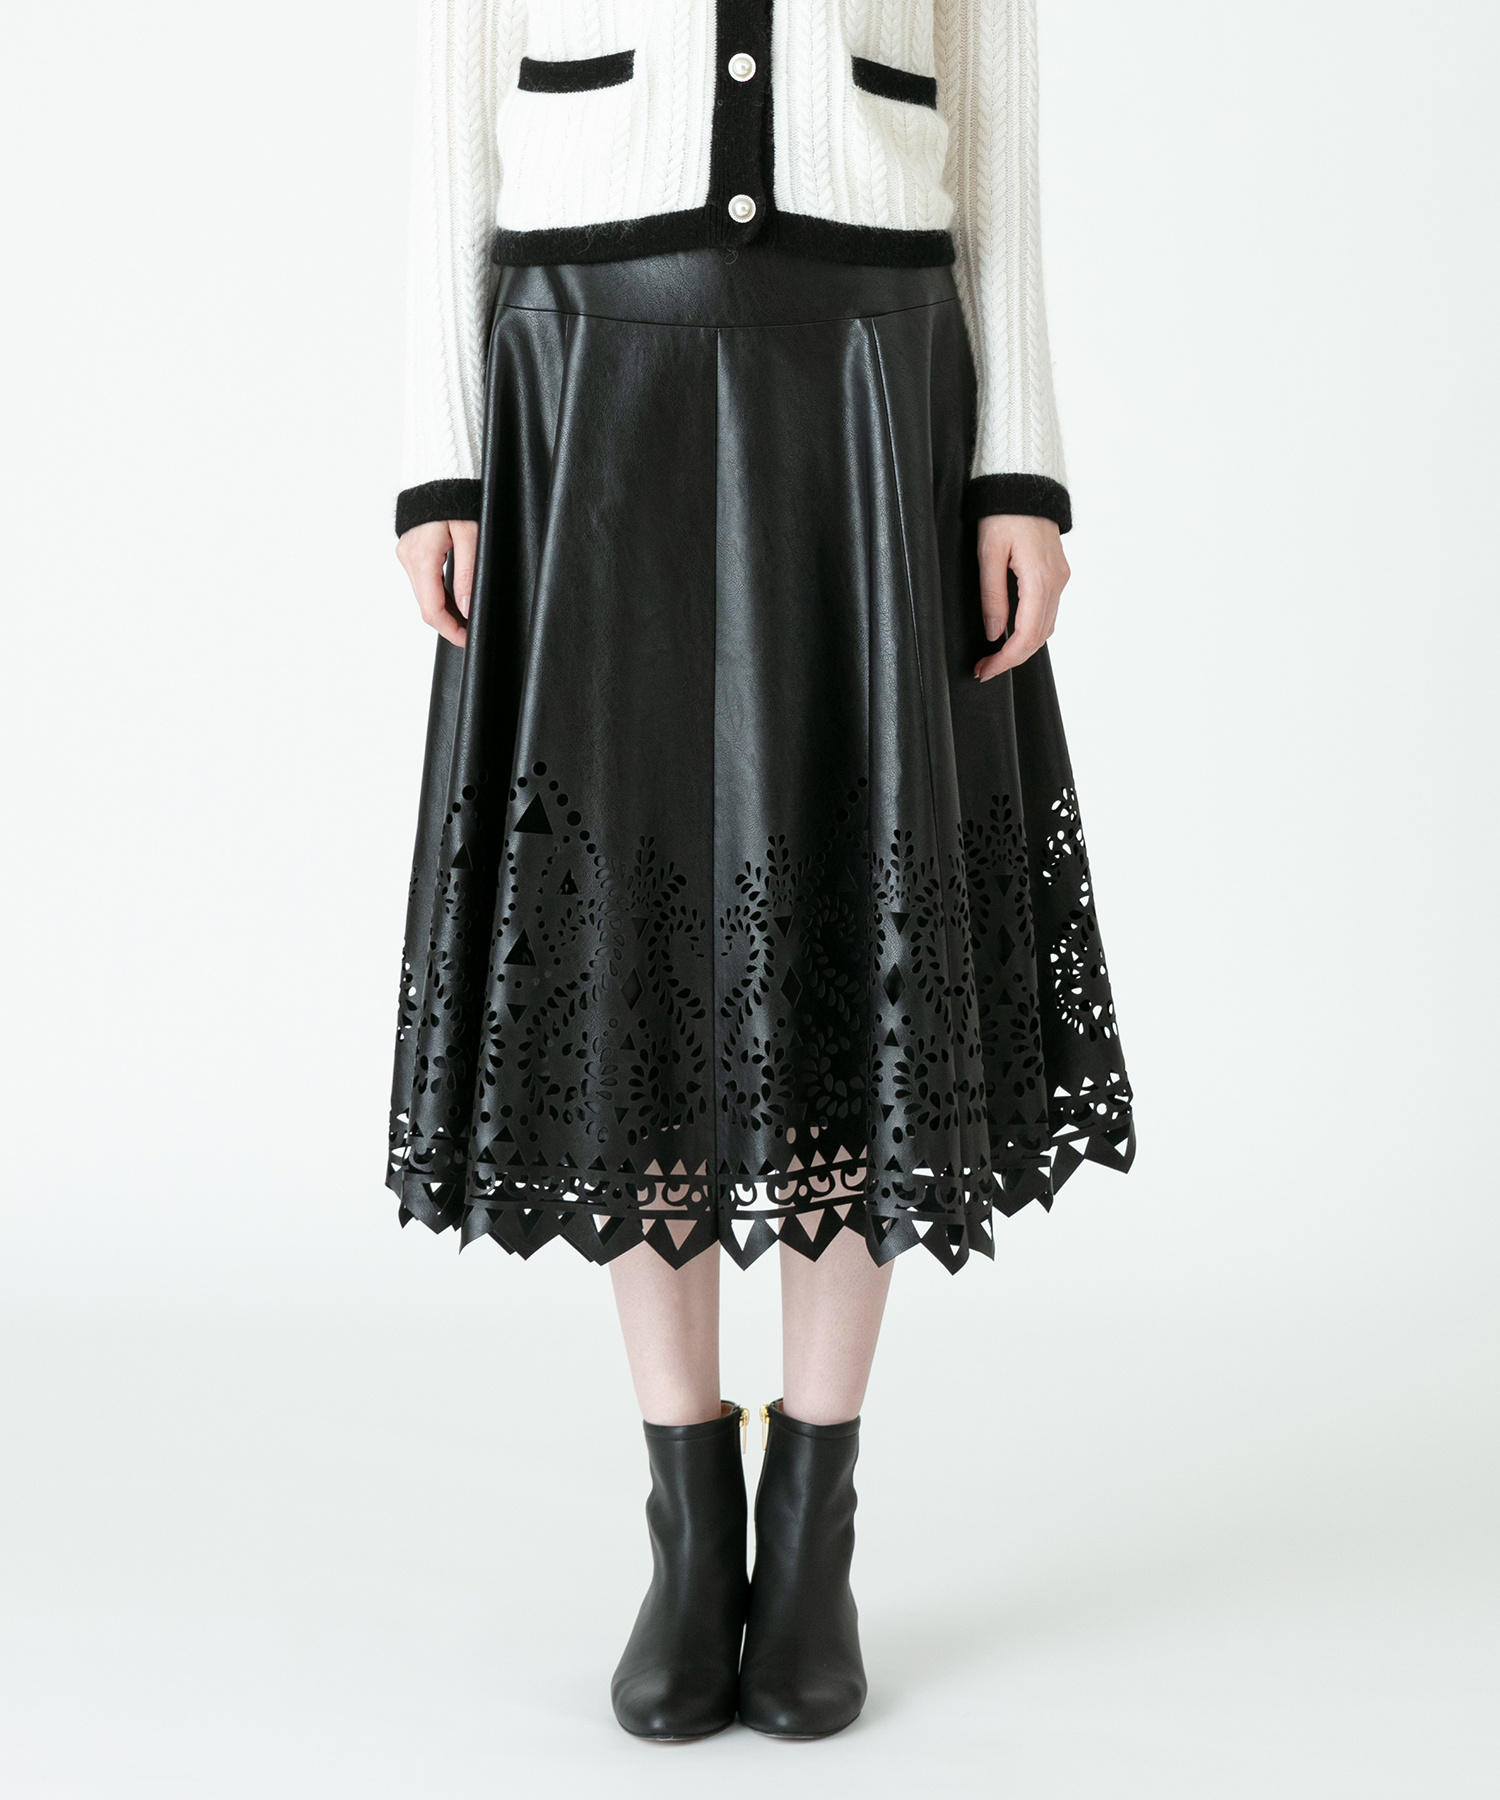 【LOULOU WILLOUGHBY】フェイクレザーパンチングスカート